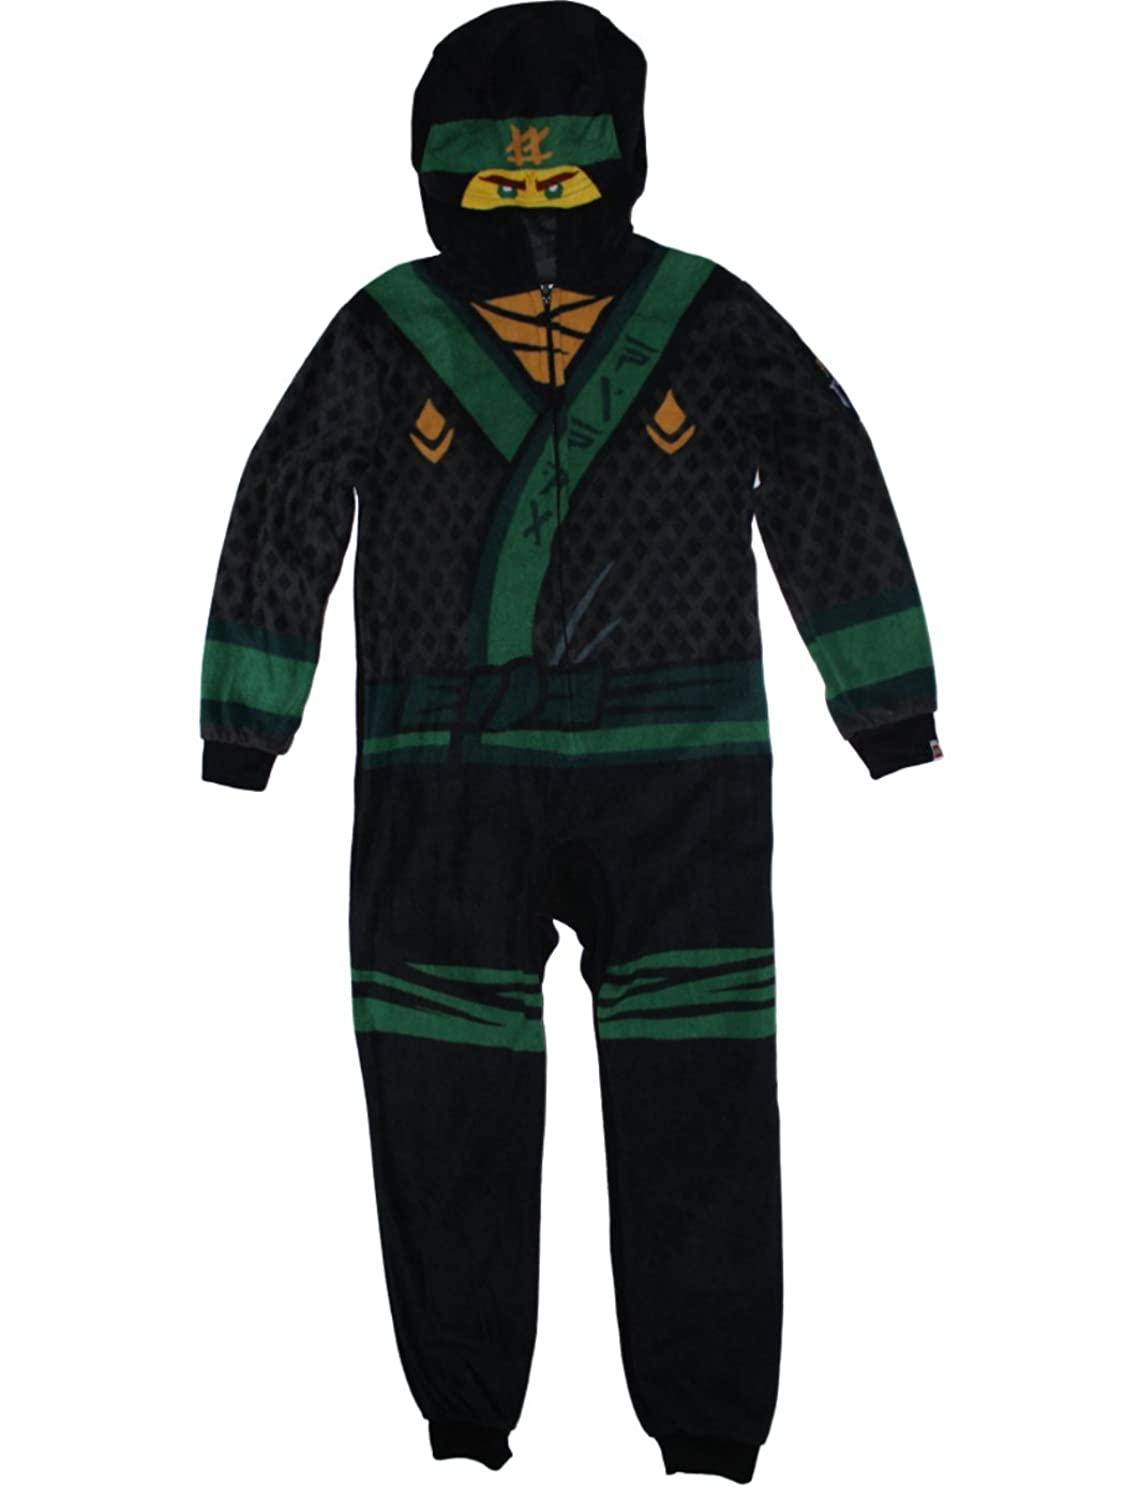 Lego Ninjago Movie Lloyd Union Suit Costume Pajamas 4-12